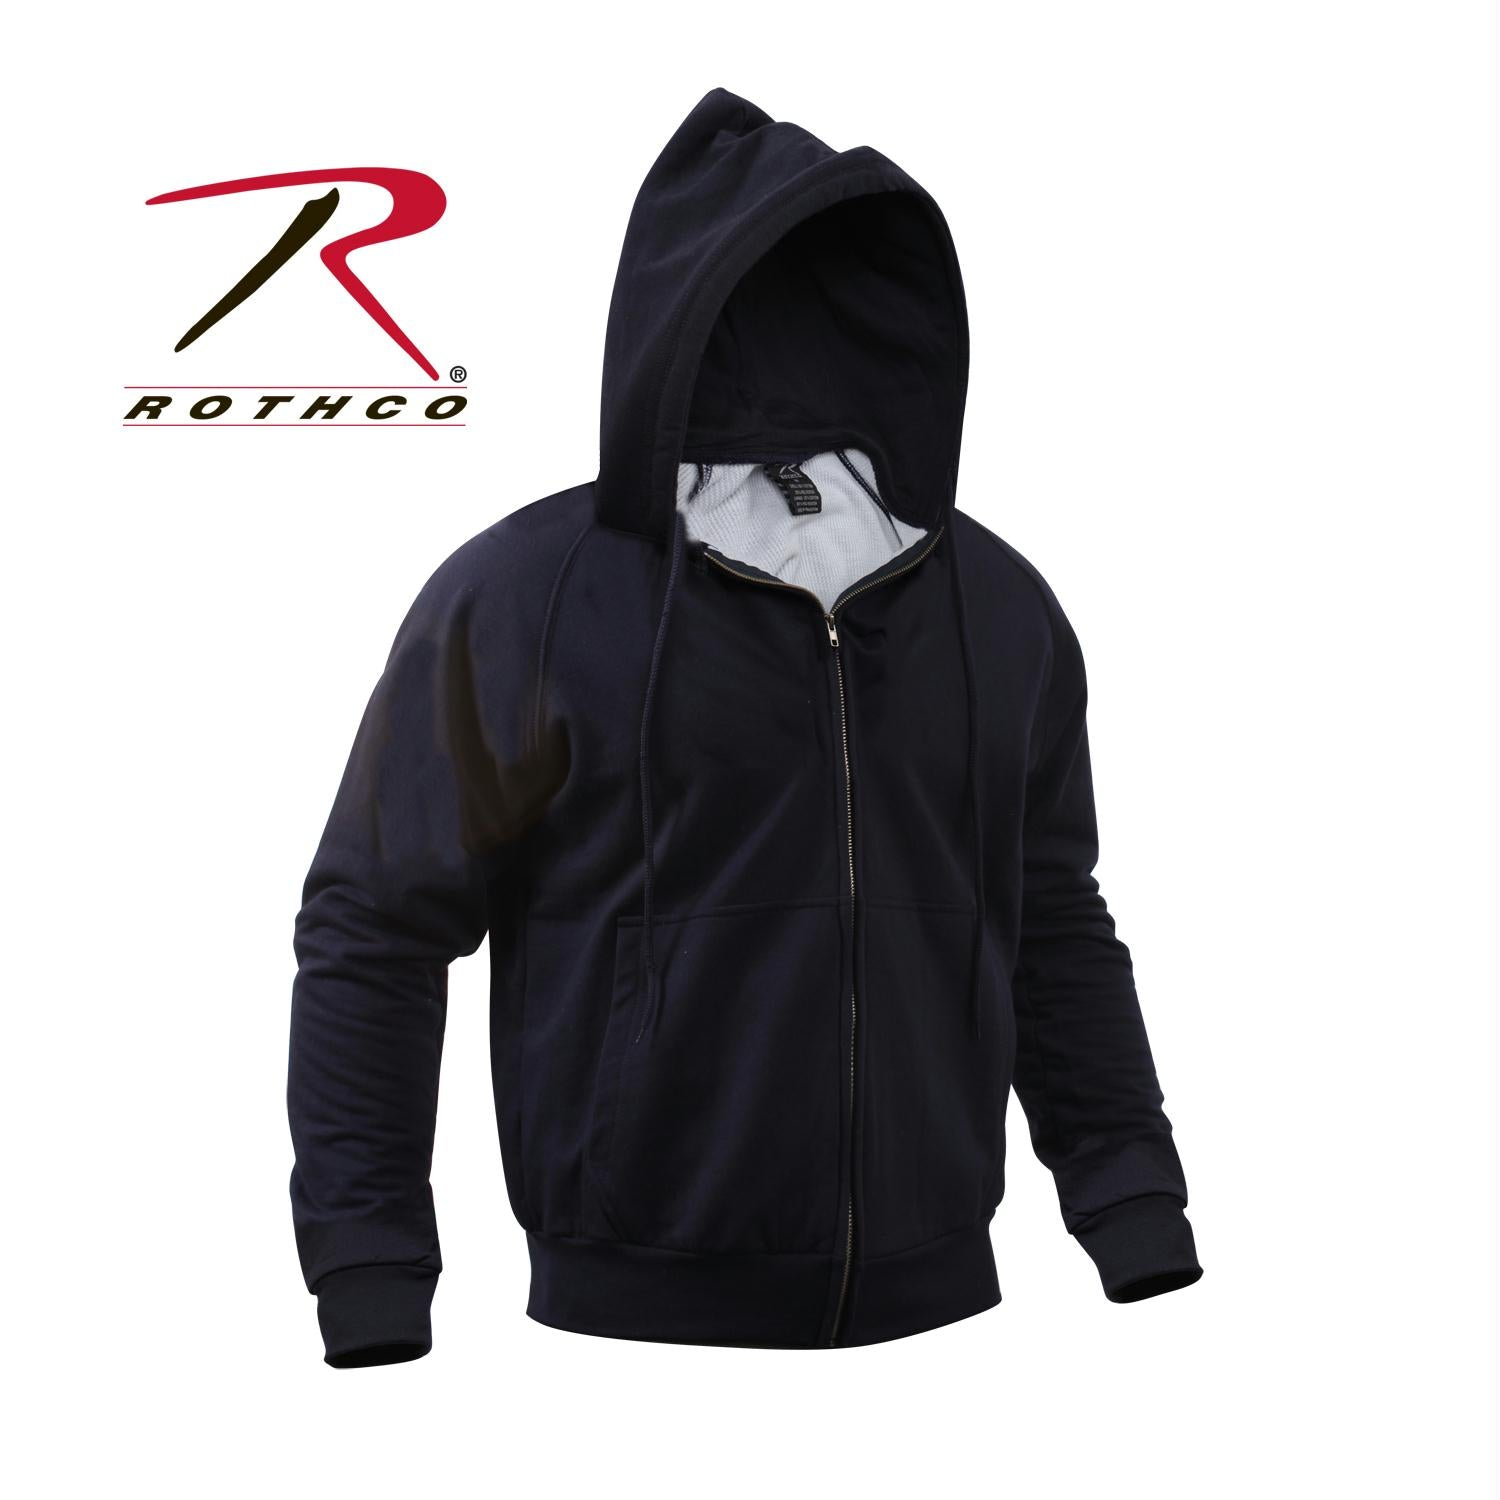 Rothco Thermal Lined Hooded Sweatshirt - Navy Blue / M